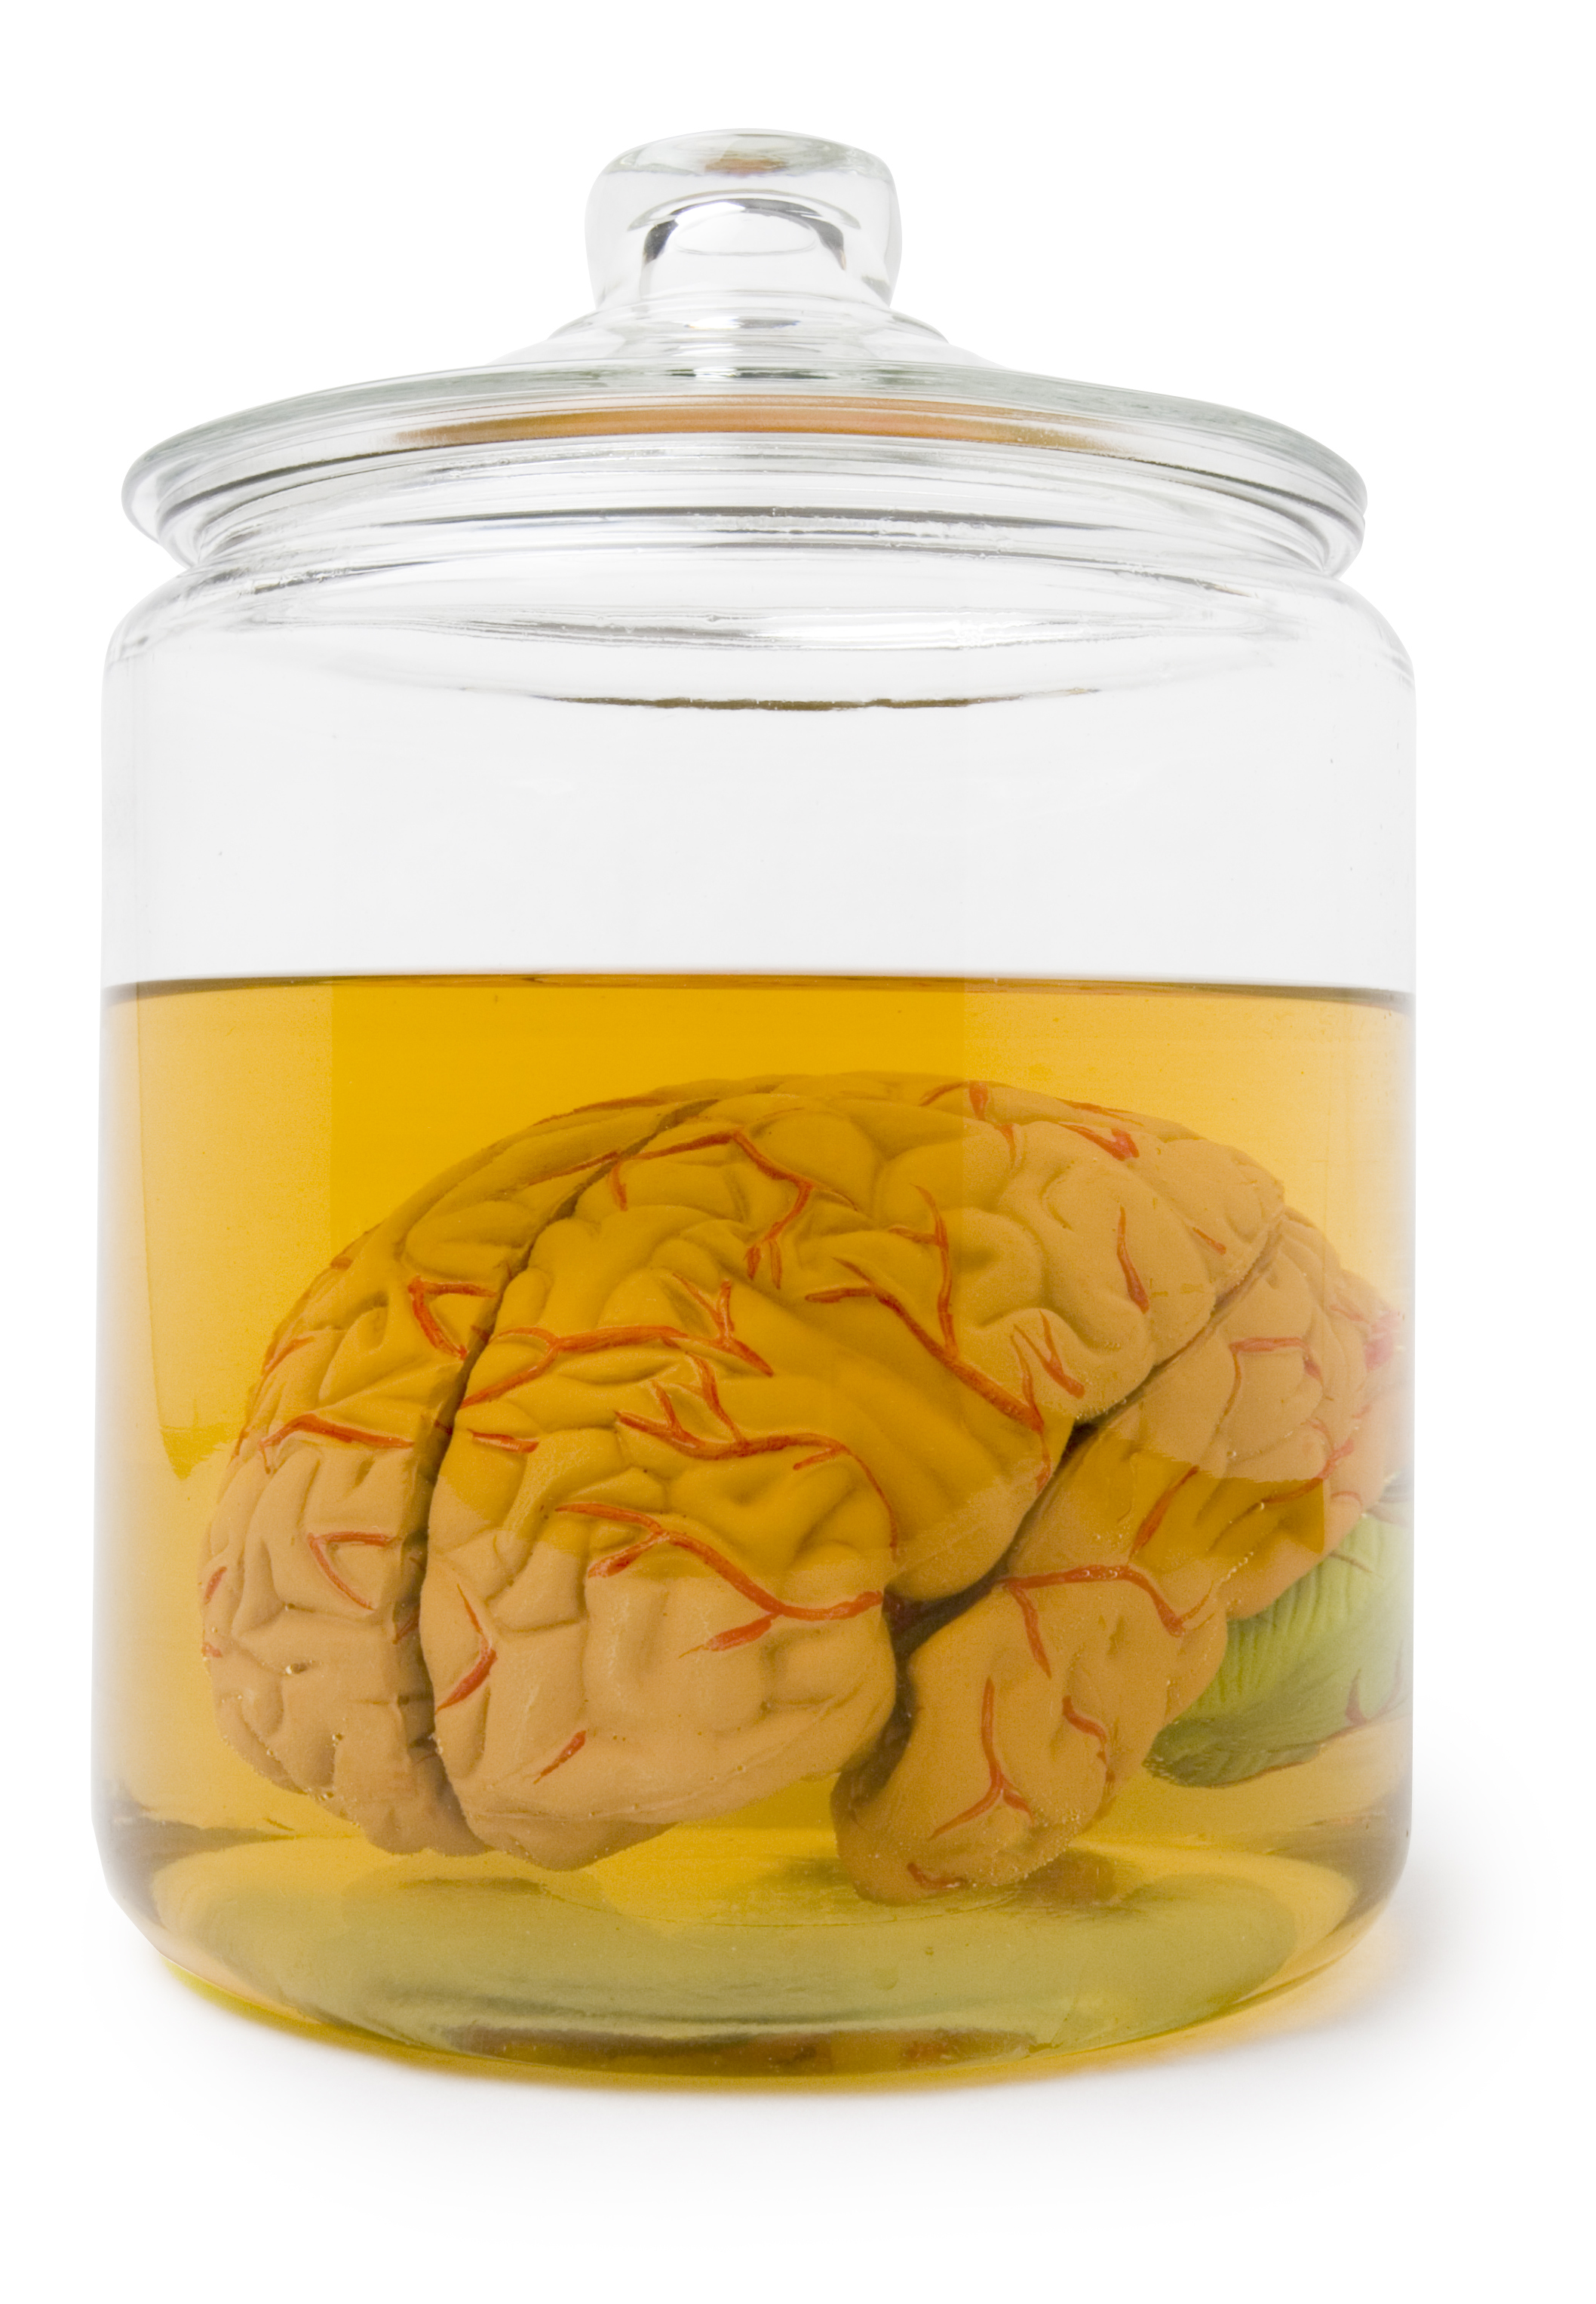 Brain in a jar with clipping path